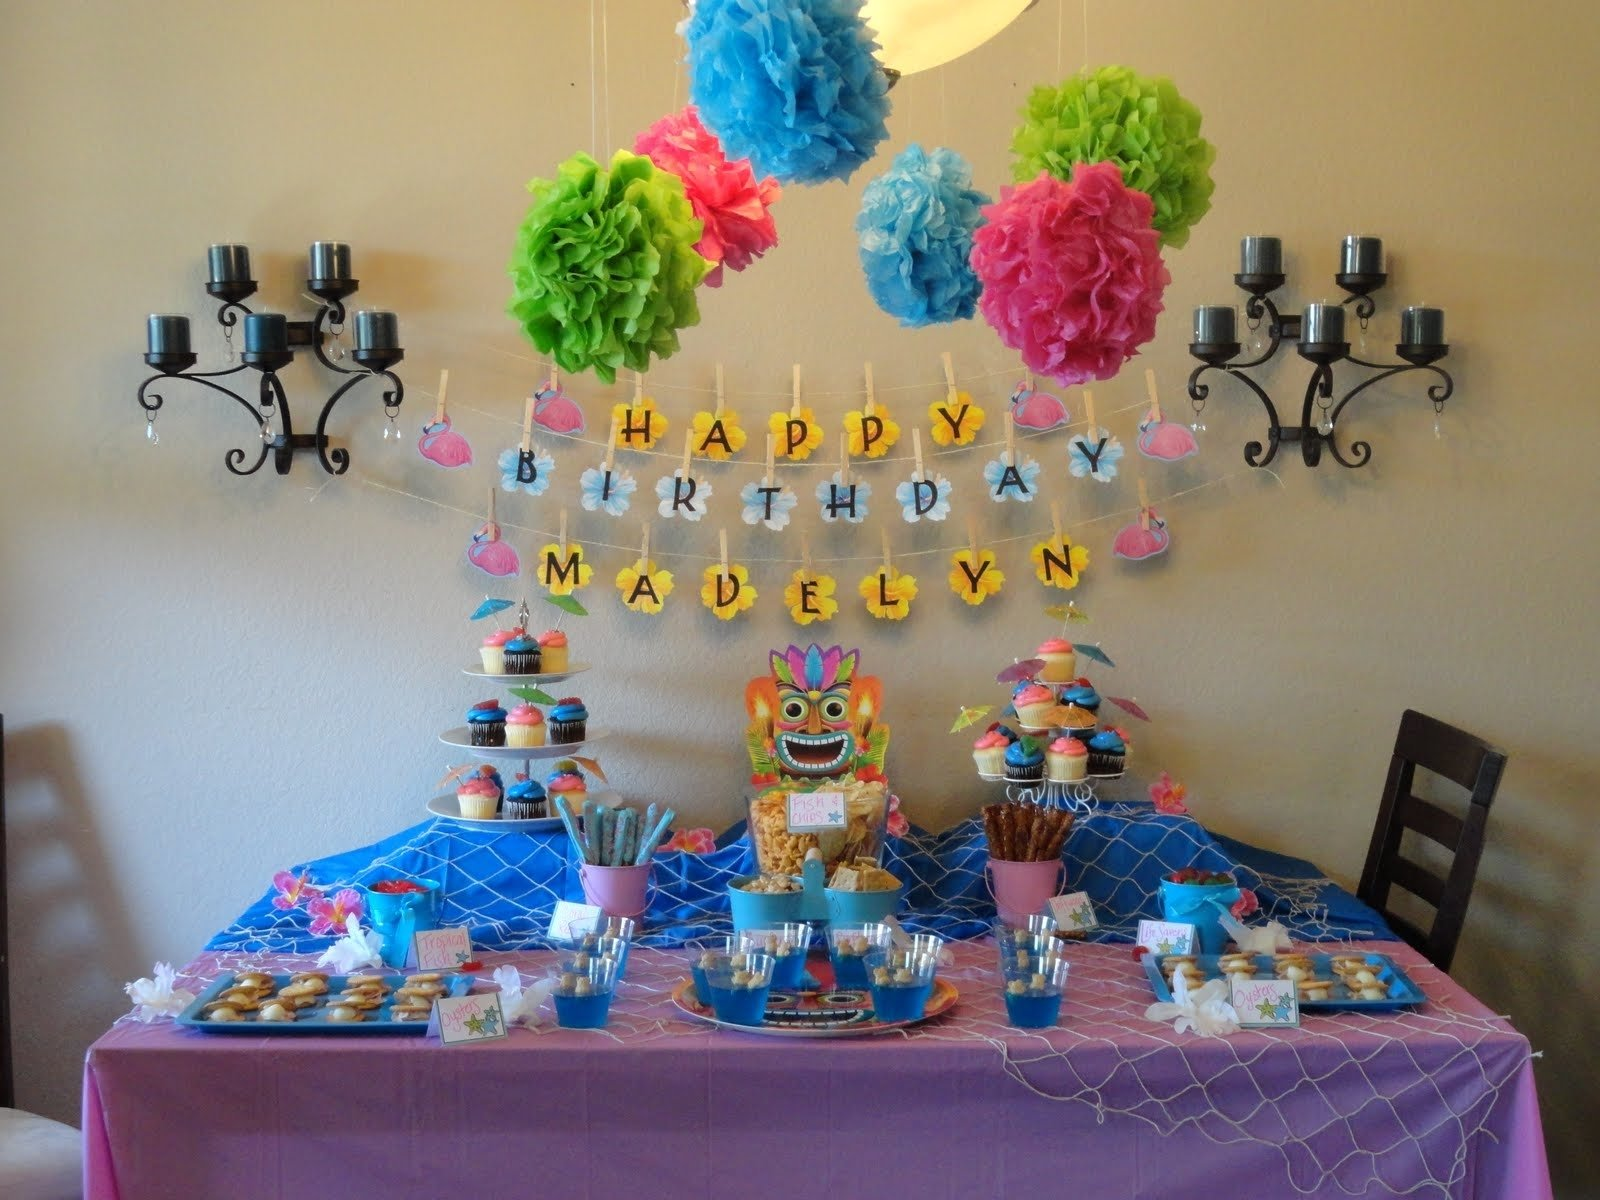 10 Famous Birthday Party Ideas For 16 Year Old Boy themes birthday 2 and 4 year old birthday party ideas as well as 13 2020